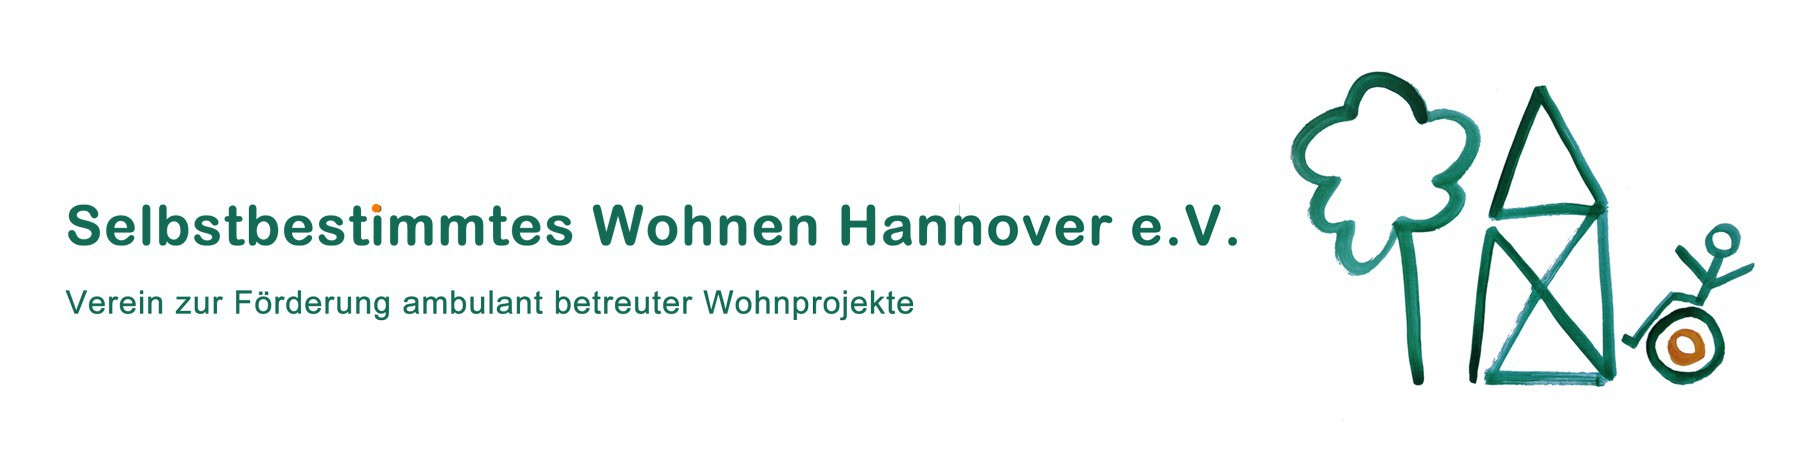 Selbstbestimmtes Wohnen Hannover e.V.